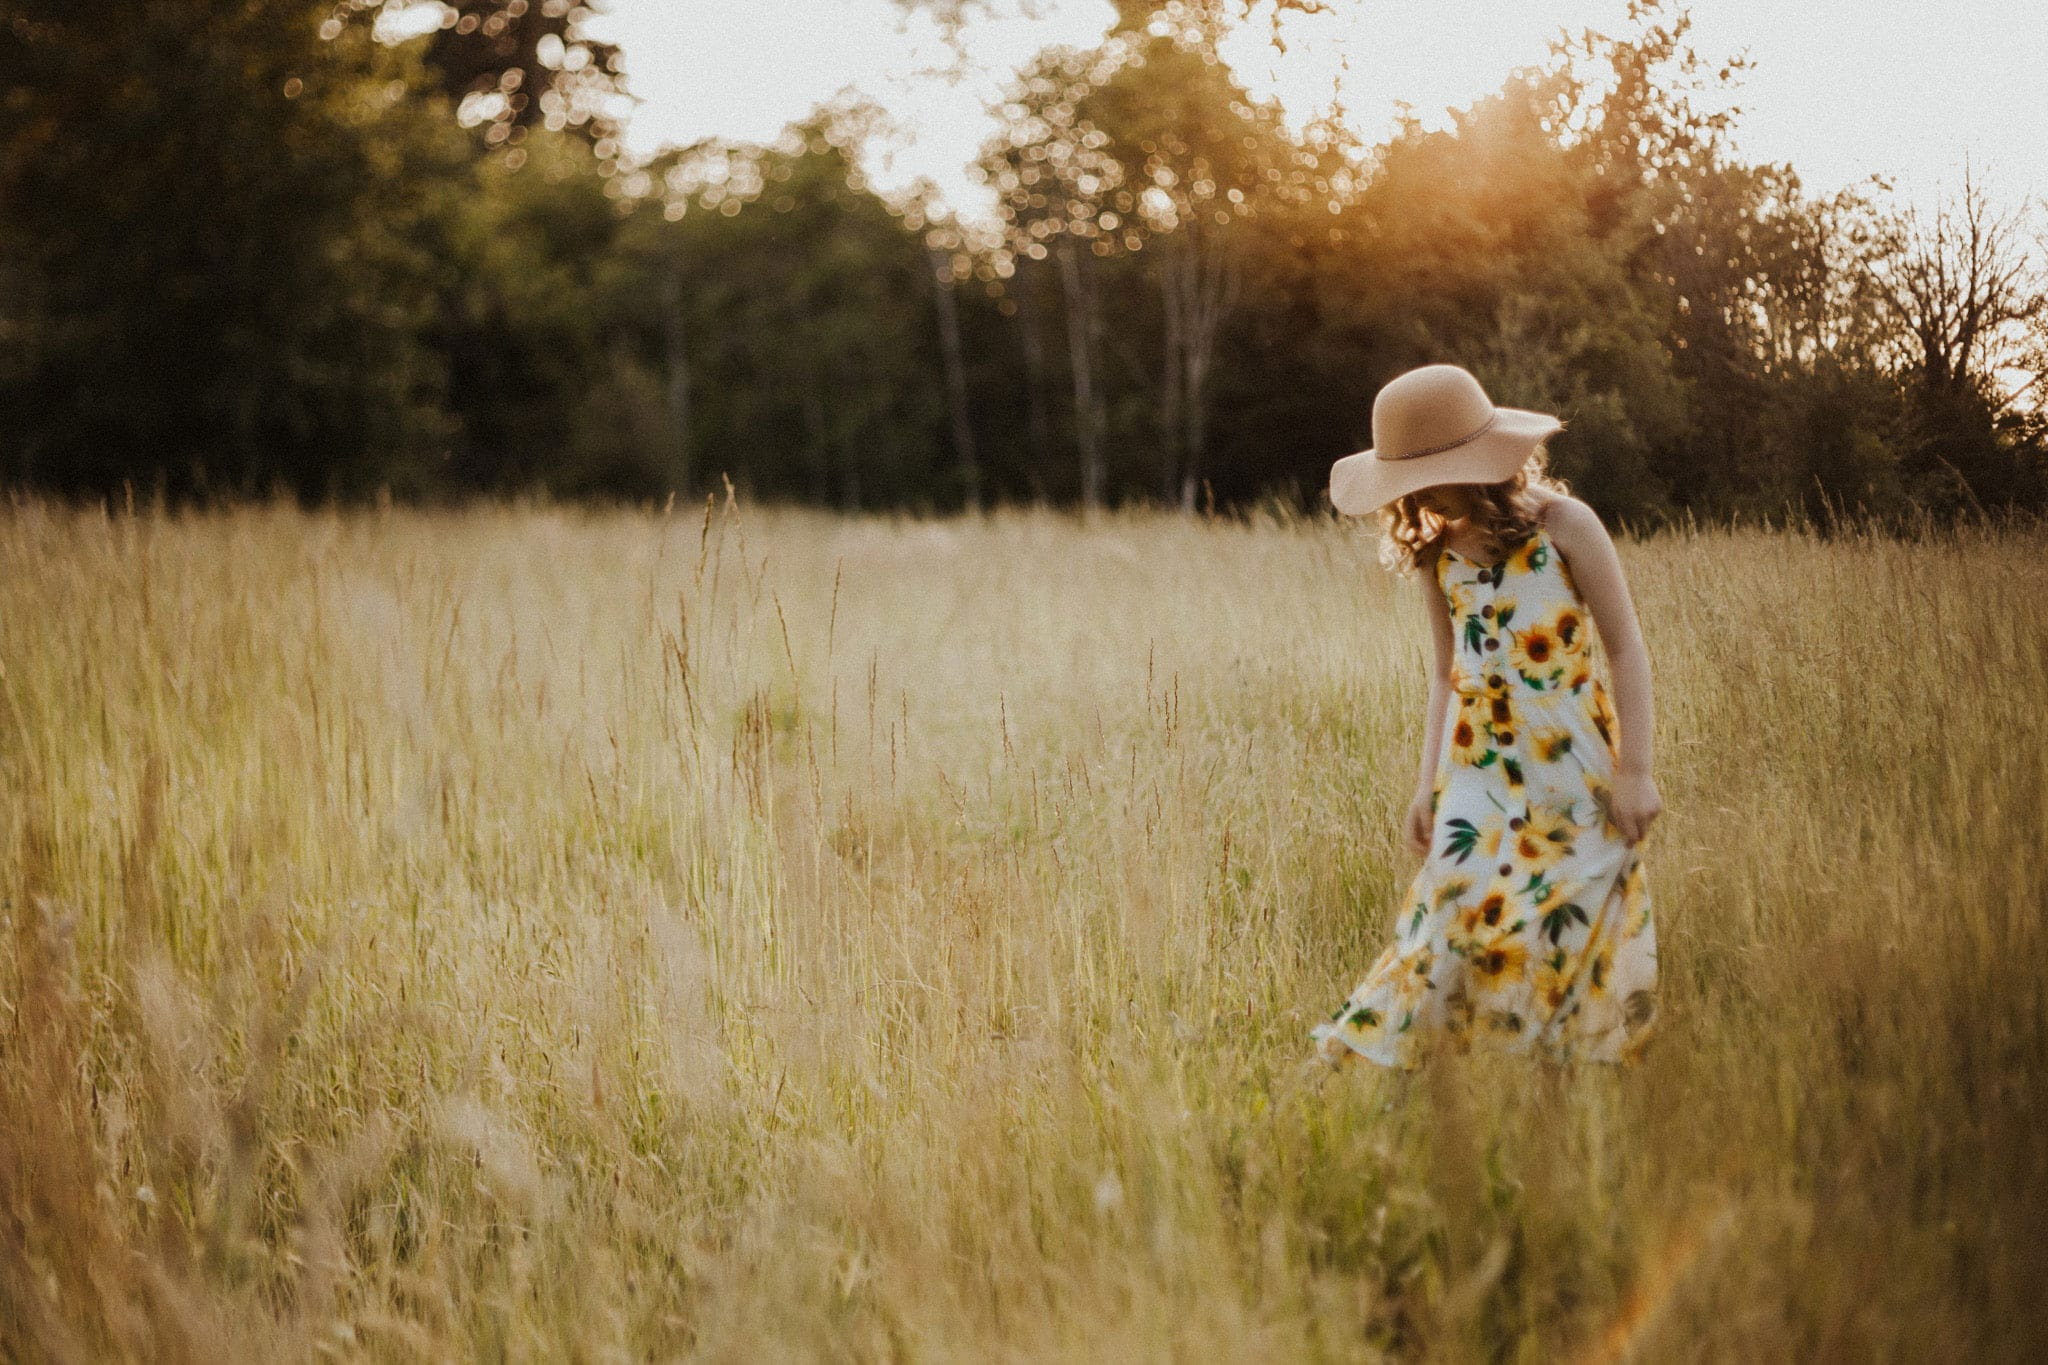 freelensing image in field of grass